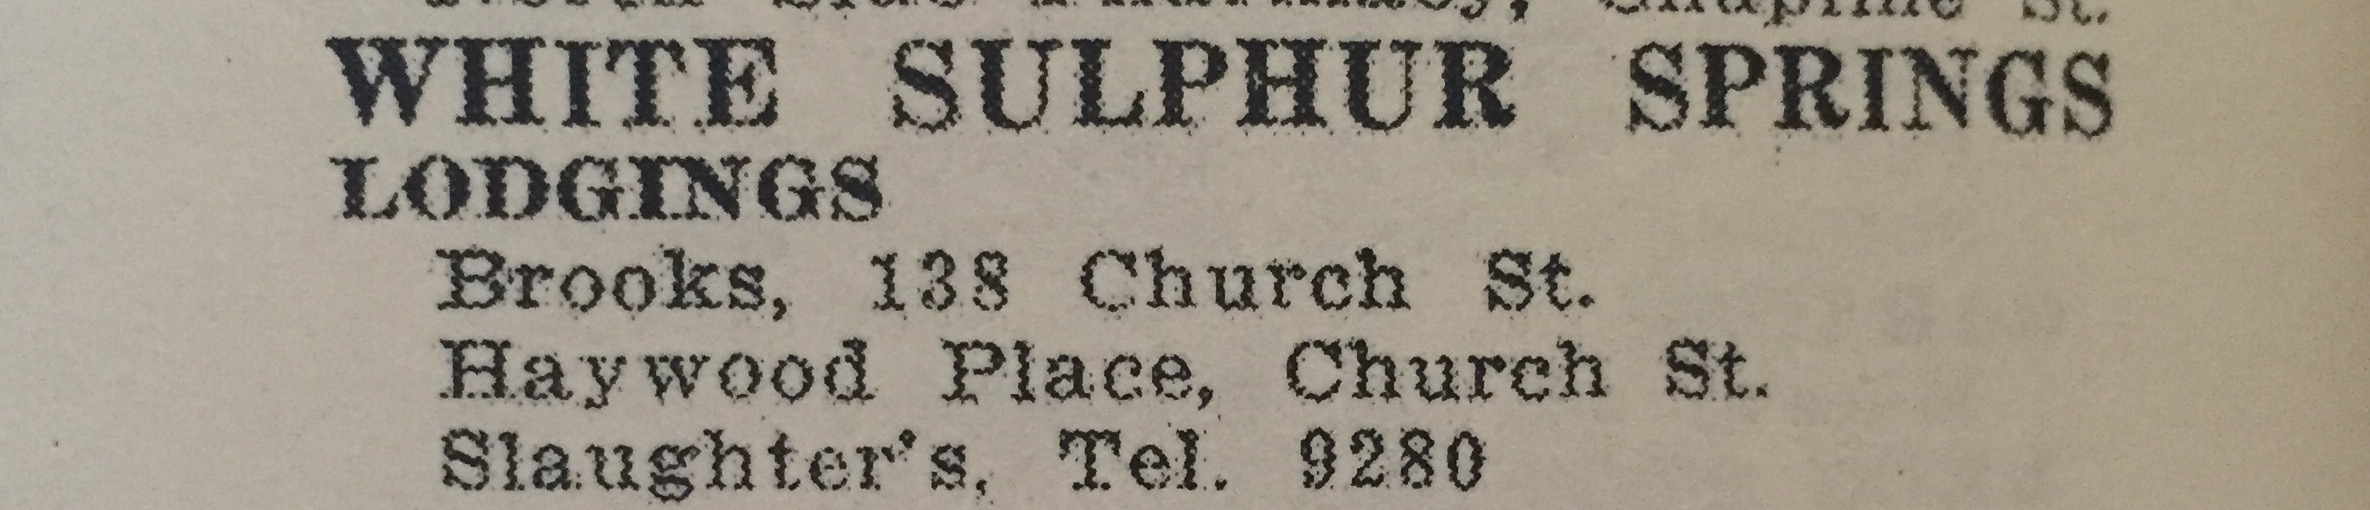 Other listings in the Williamson area in the 1954 edition.